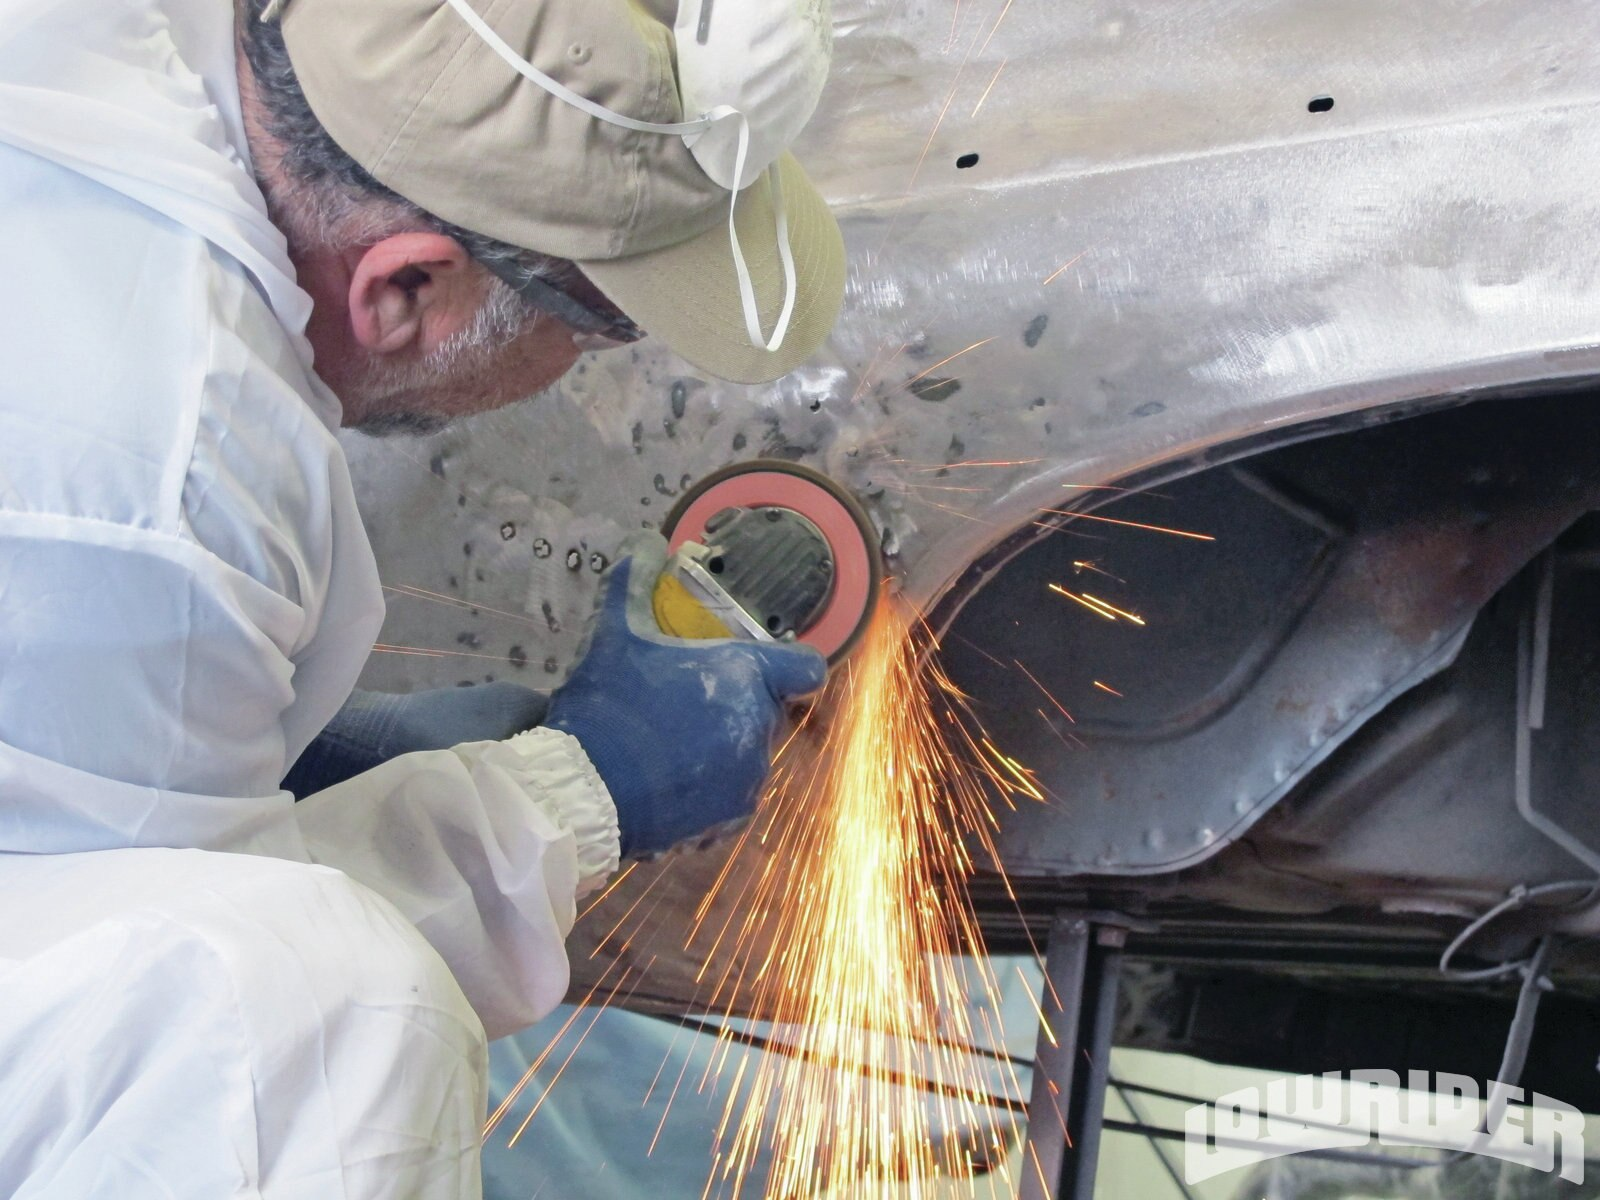 <strong>17</strong>. Jesus used a grinder to level out the welds that were done to the body.